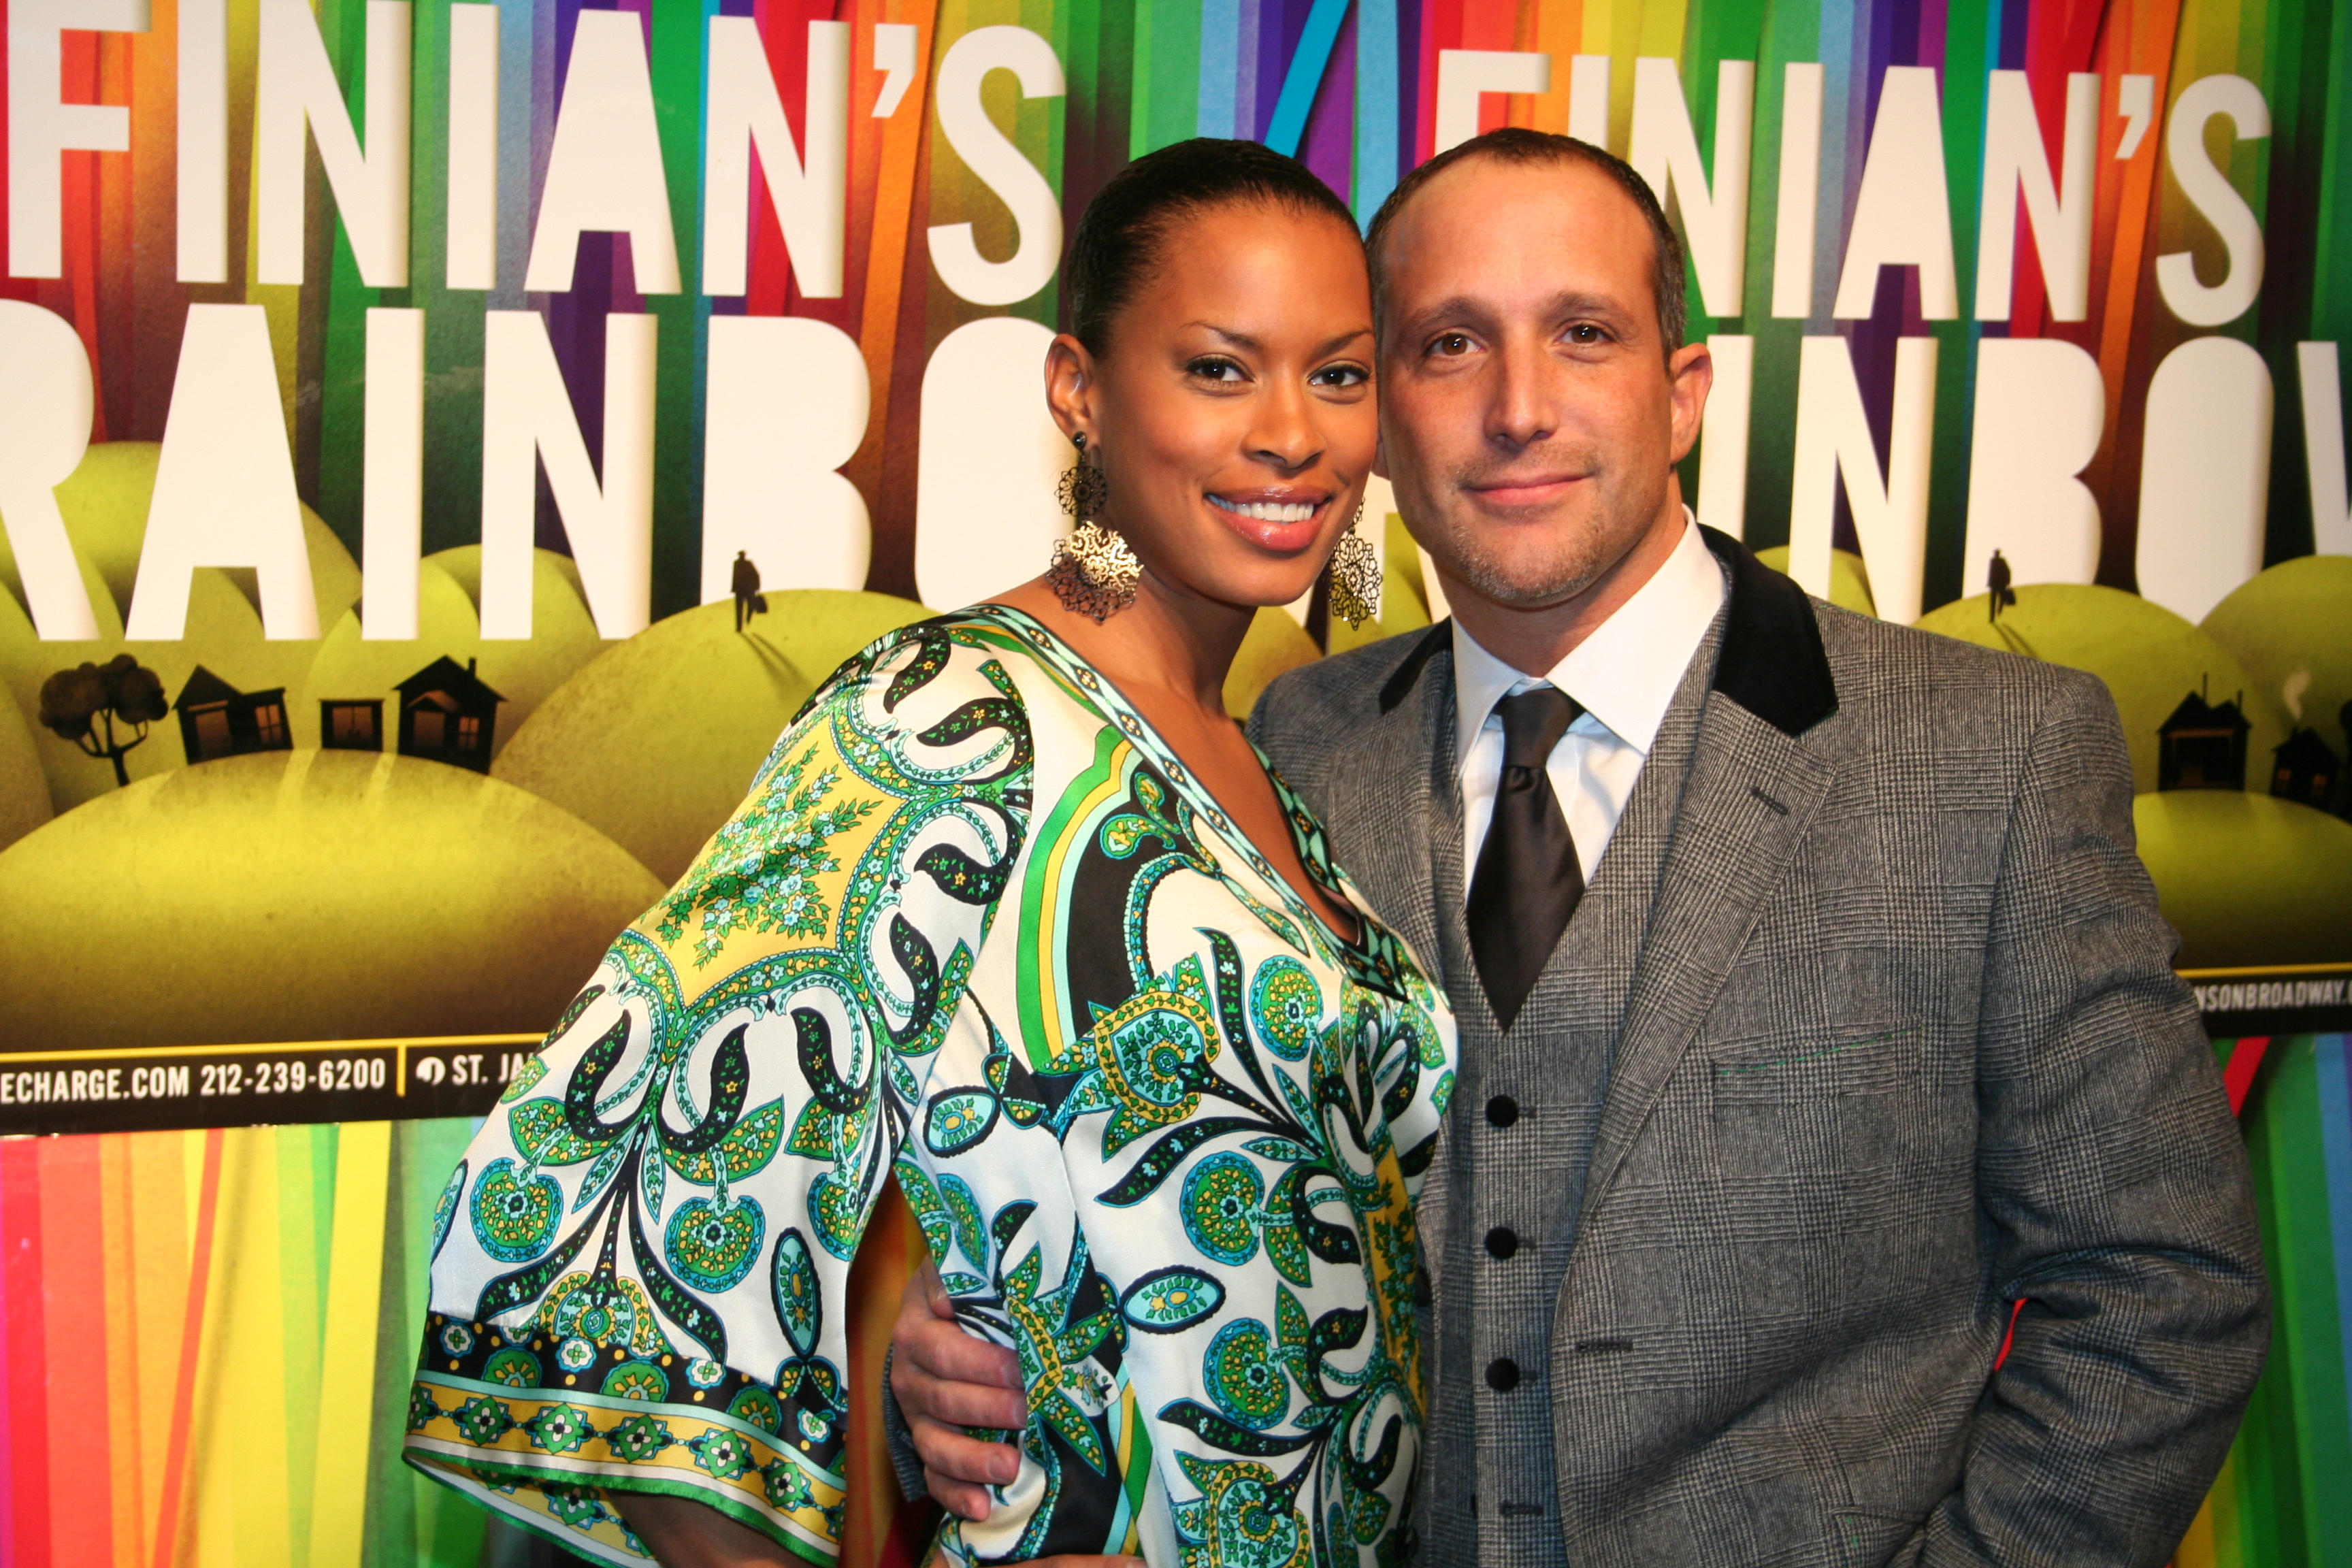 Kearran Giovanni with her spouse Philip Ambrosino